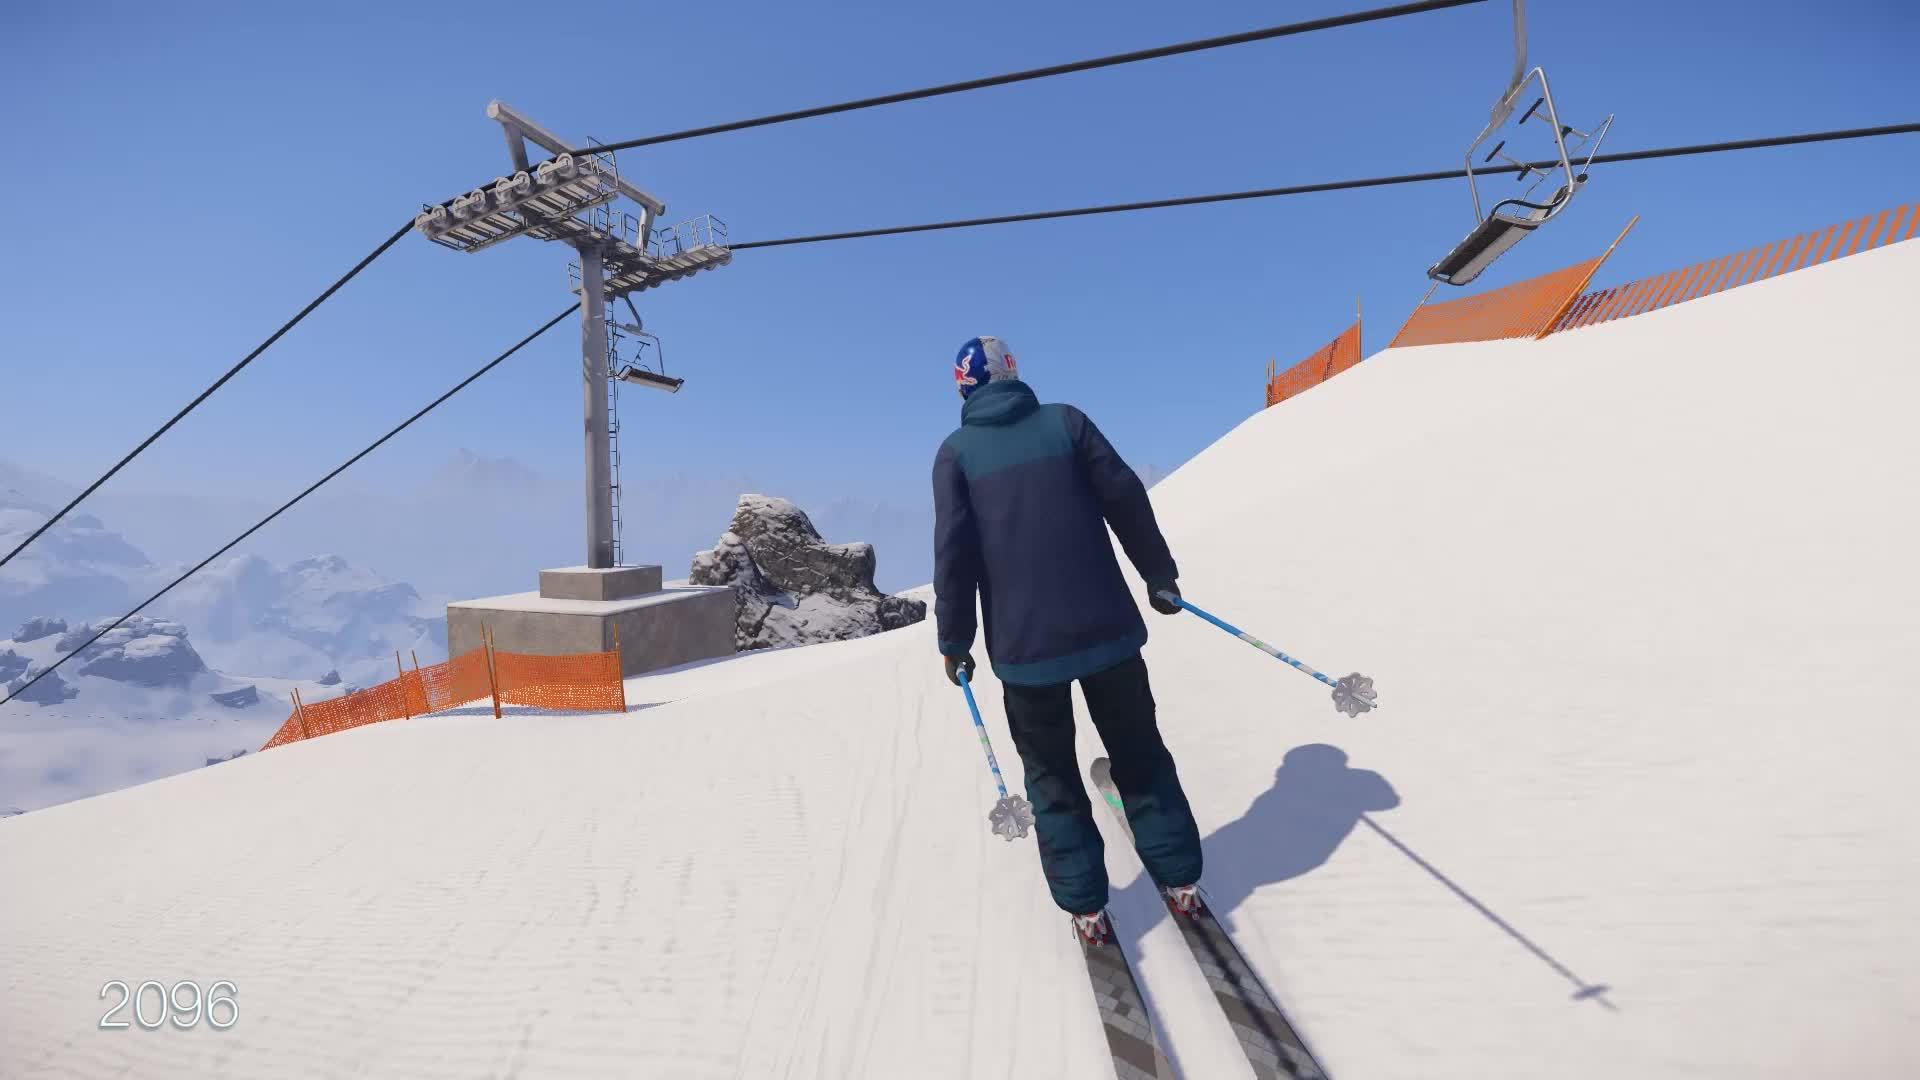 3060, snowthegame, spin, Epic 3060 degree spin in SNOW GIFs